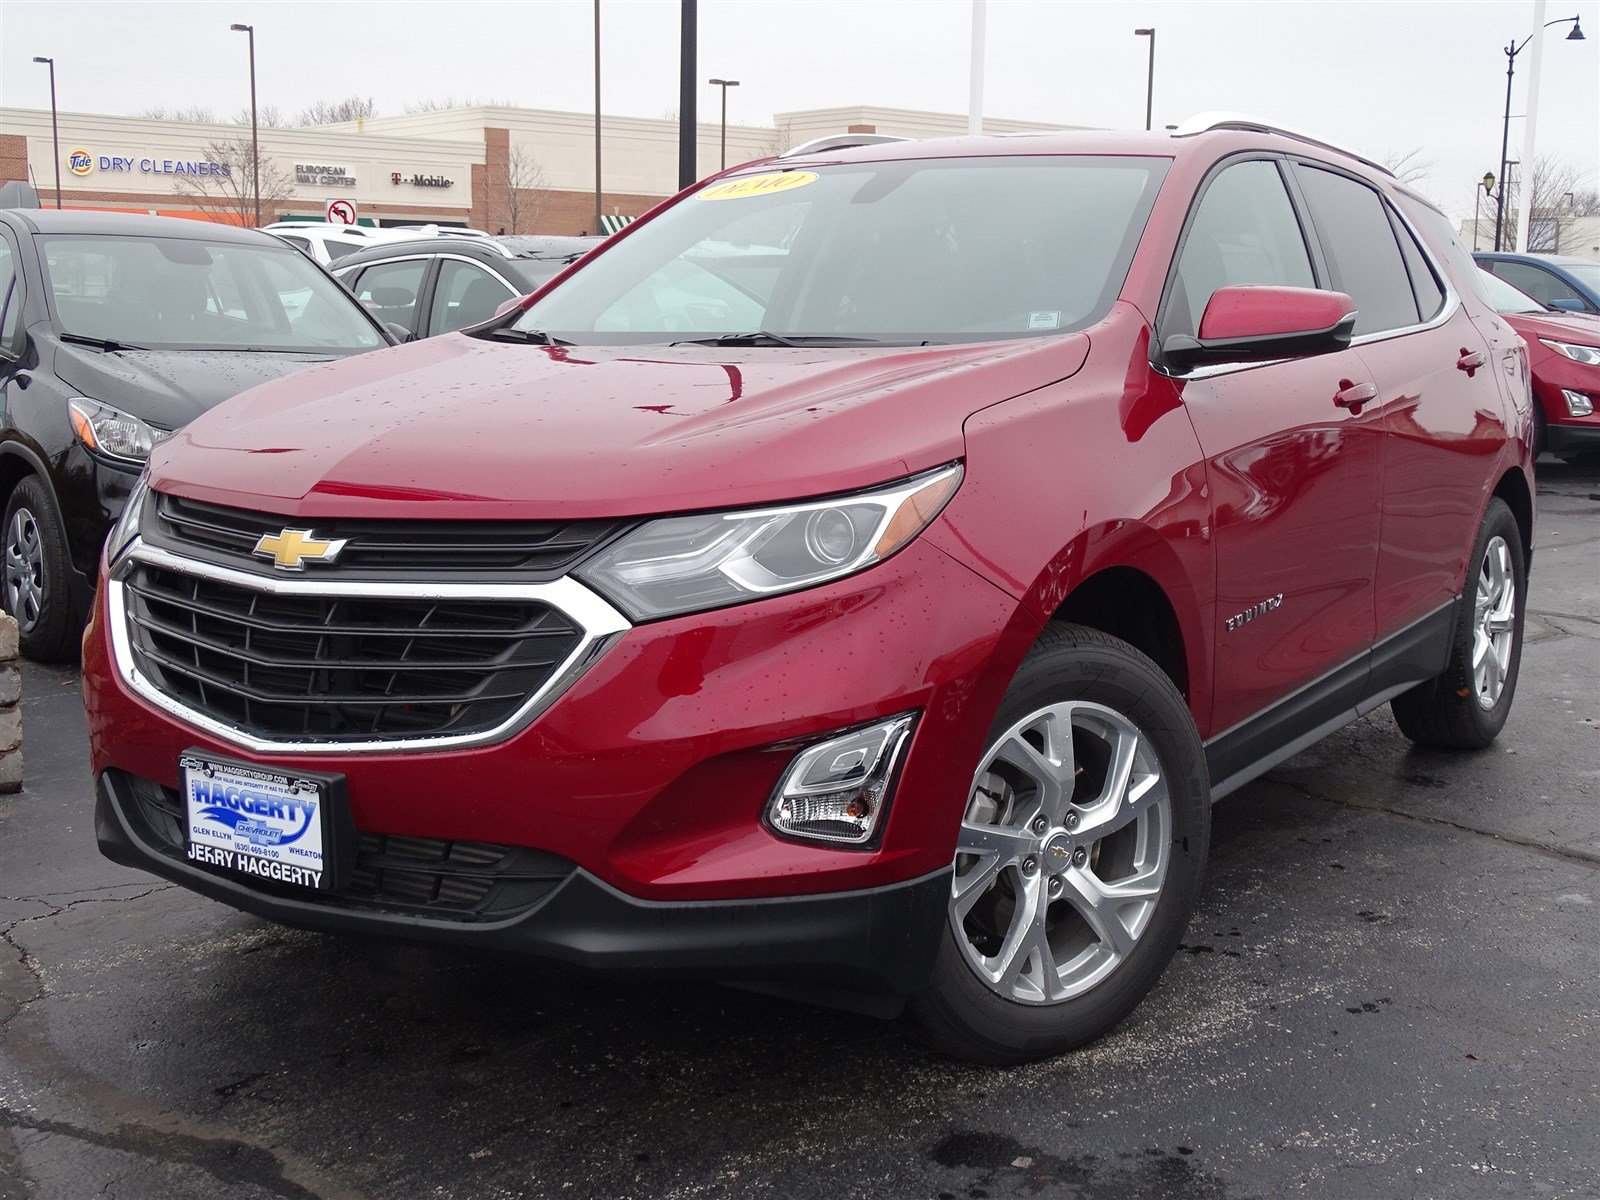 New 2018 Chevrolet Equinox LT FWD 4DR SUV Stock # 65335